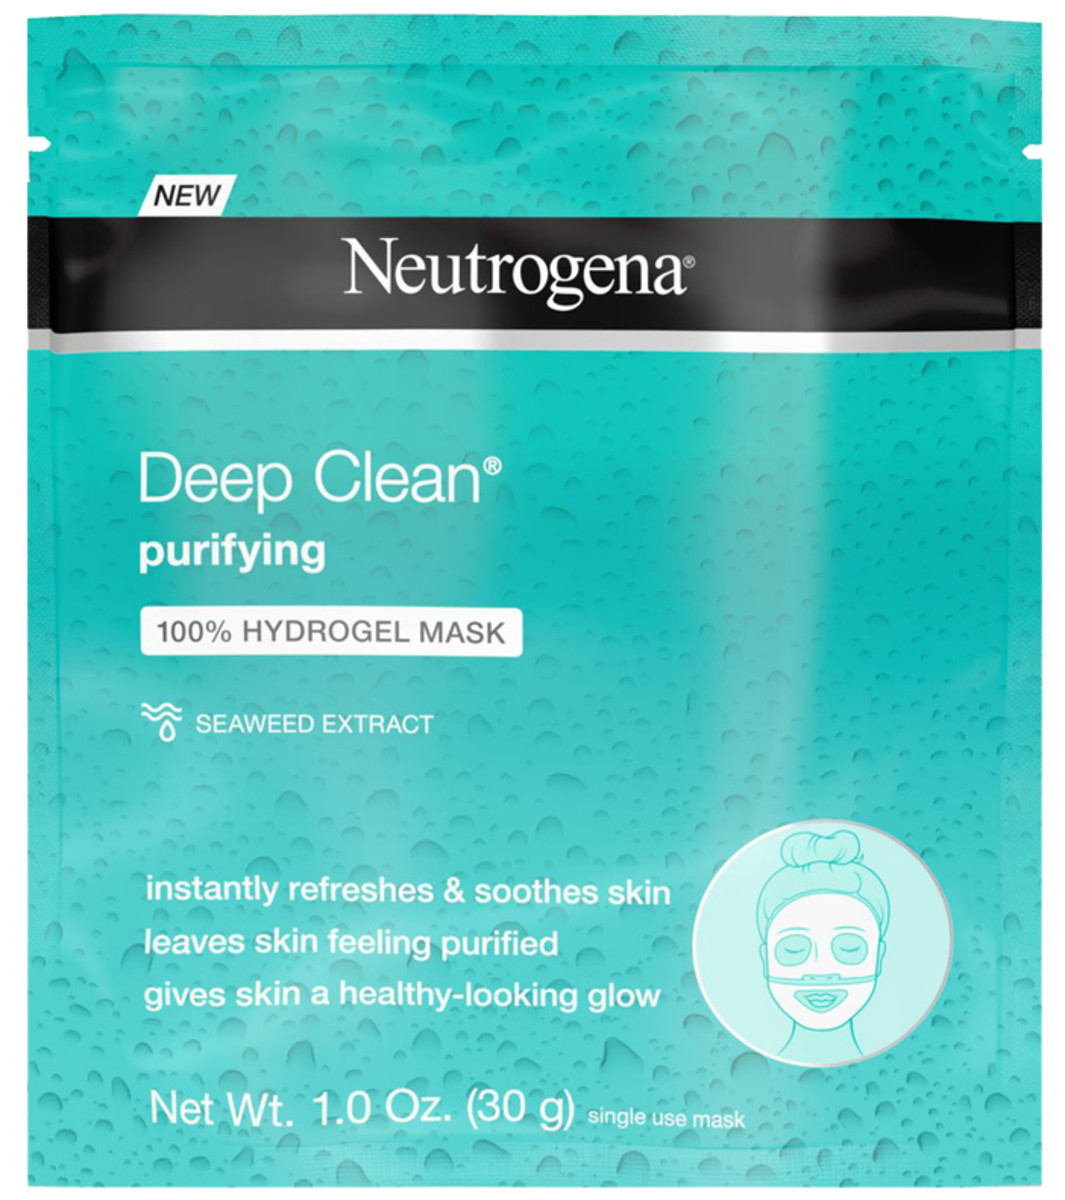 Neutrogena Deep Clean Hydrogel Mask